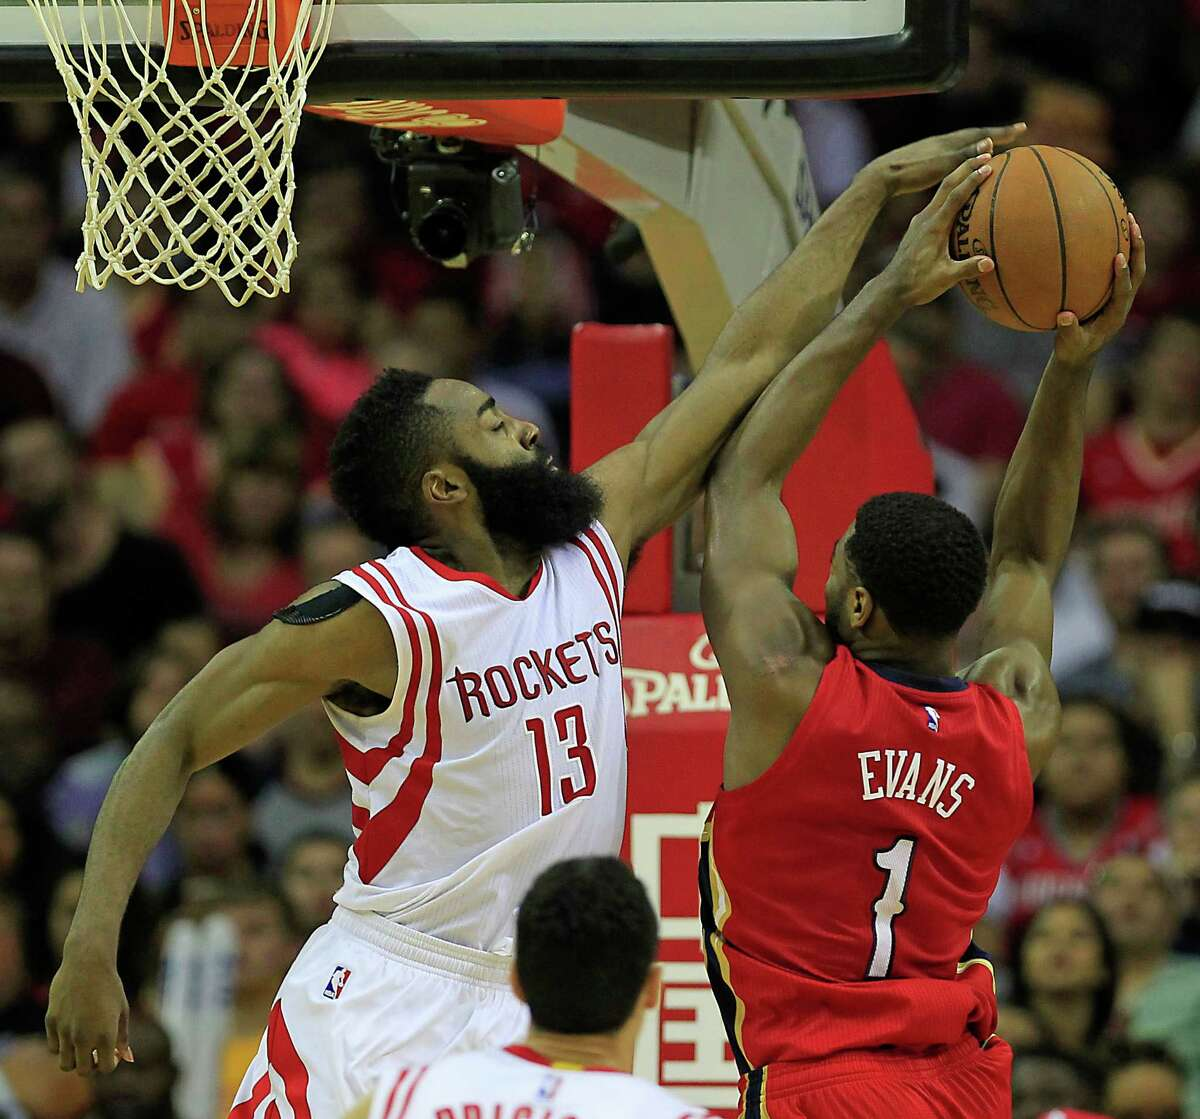 Judge his defense off more than a Vine video If you got all your NBA knowledge by watching Vine videos, then you have concluded James Harden is the worst defensive player in the history of basketball. Fortunately, the sport is much more than six-second videos. Sure, he's never going to be confused with Vernon Maxwell on the defensive end, but he's not close to the worst defender in the league. Those Vine videos also make some question his defensive effort since they're usually clips of him giving up on a play. Harden is asked to do more than any other player in the league, and there is no question, he sometimes takes a play off, but watch an entire game. It'll be more telling than the Vine video your friend sent you. We promise.